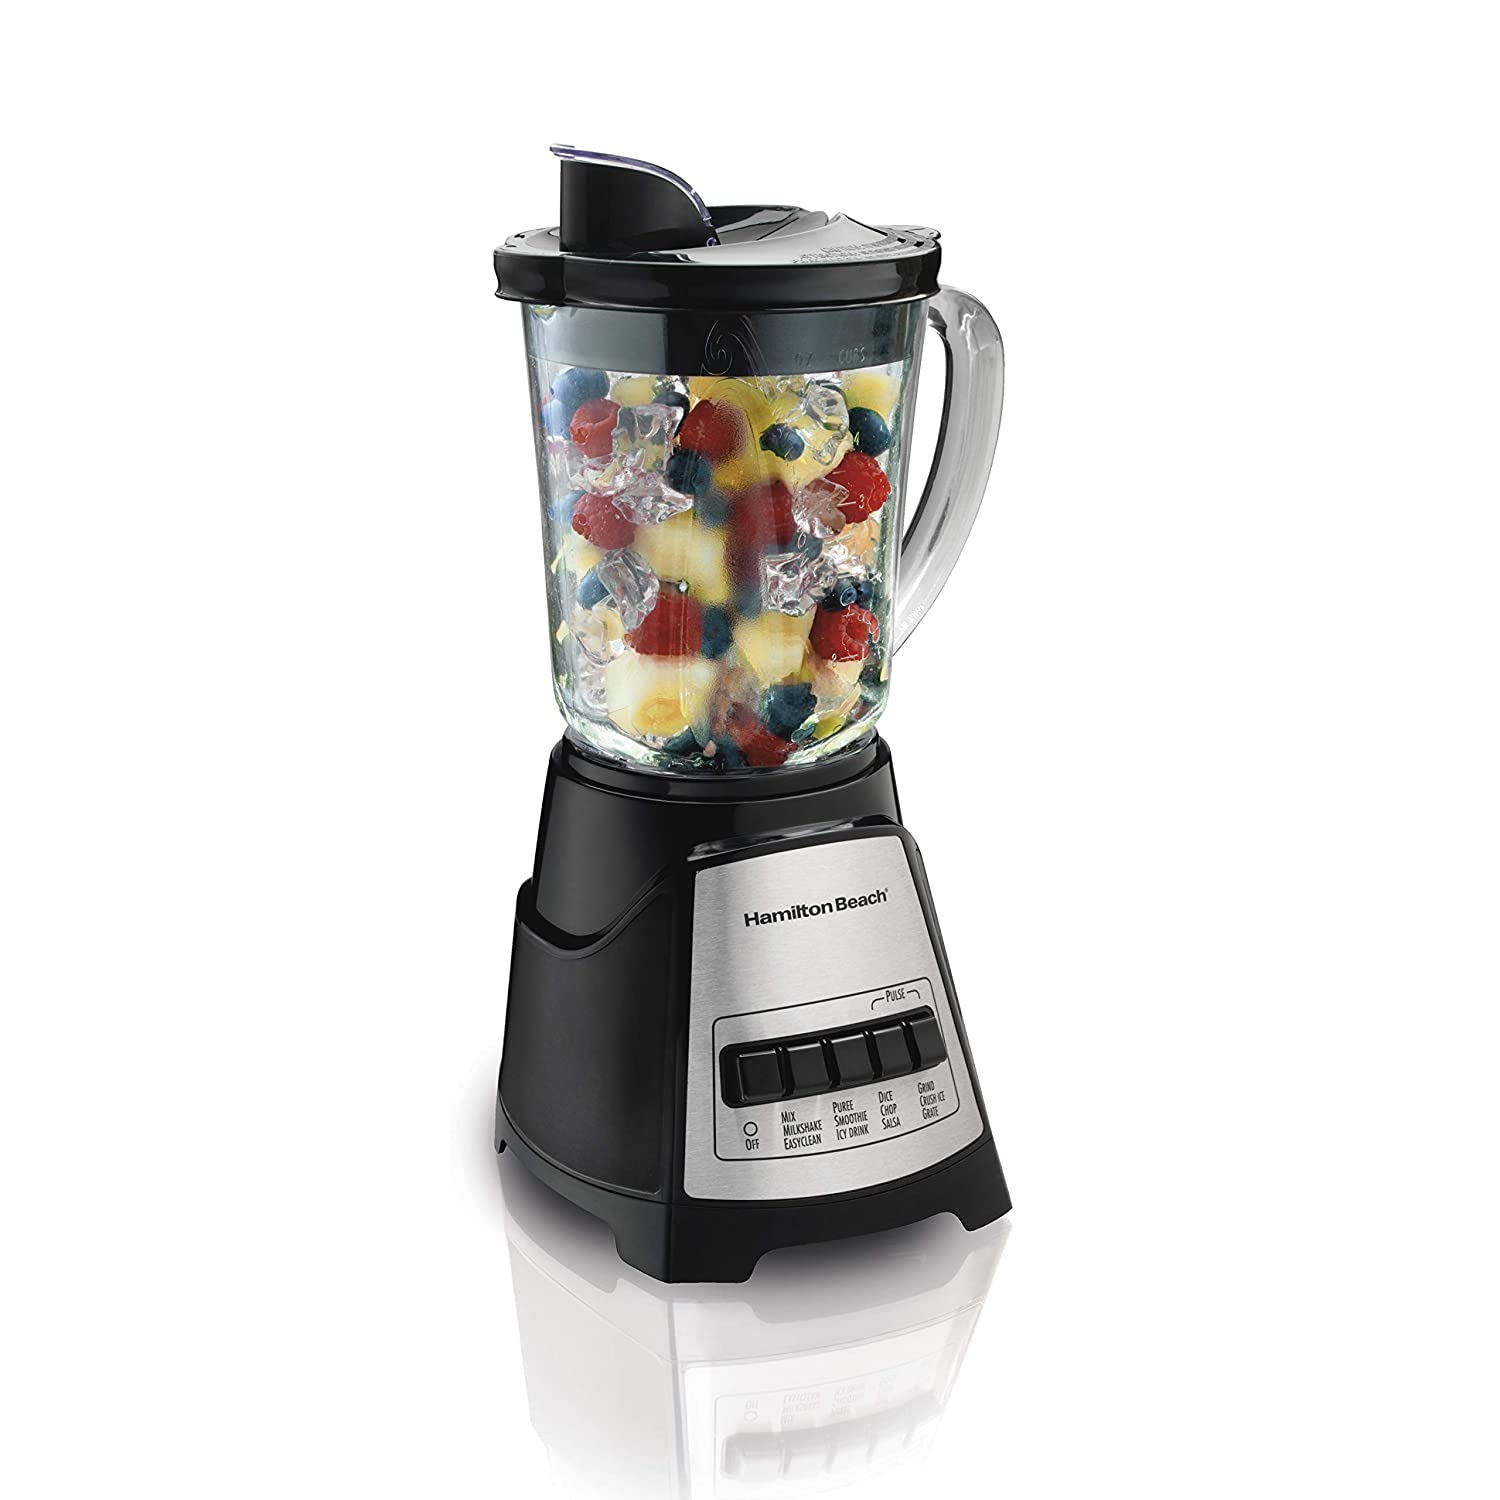 Hamilton Beach 58148 Power Elite Multi-Function Blender, Black 58148A